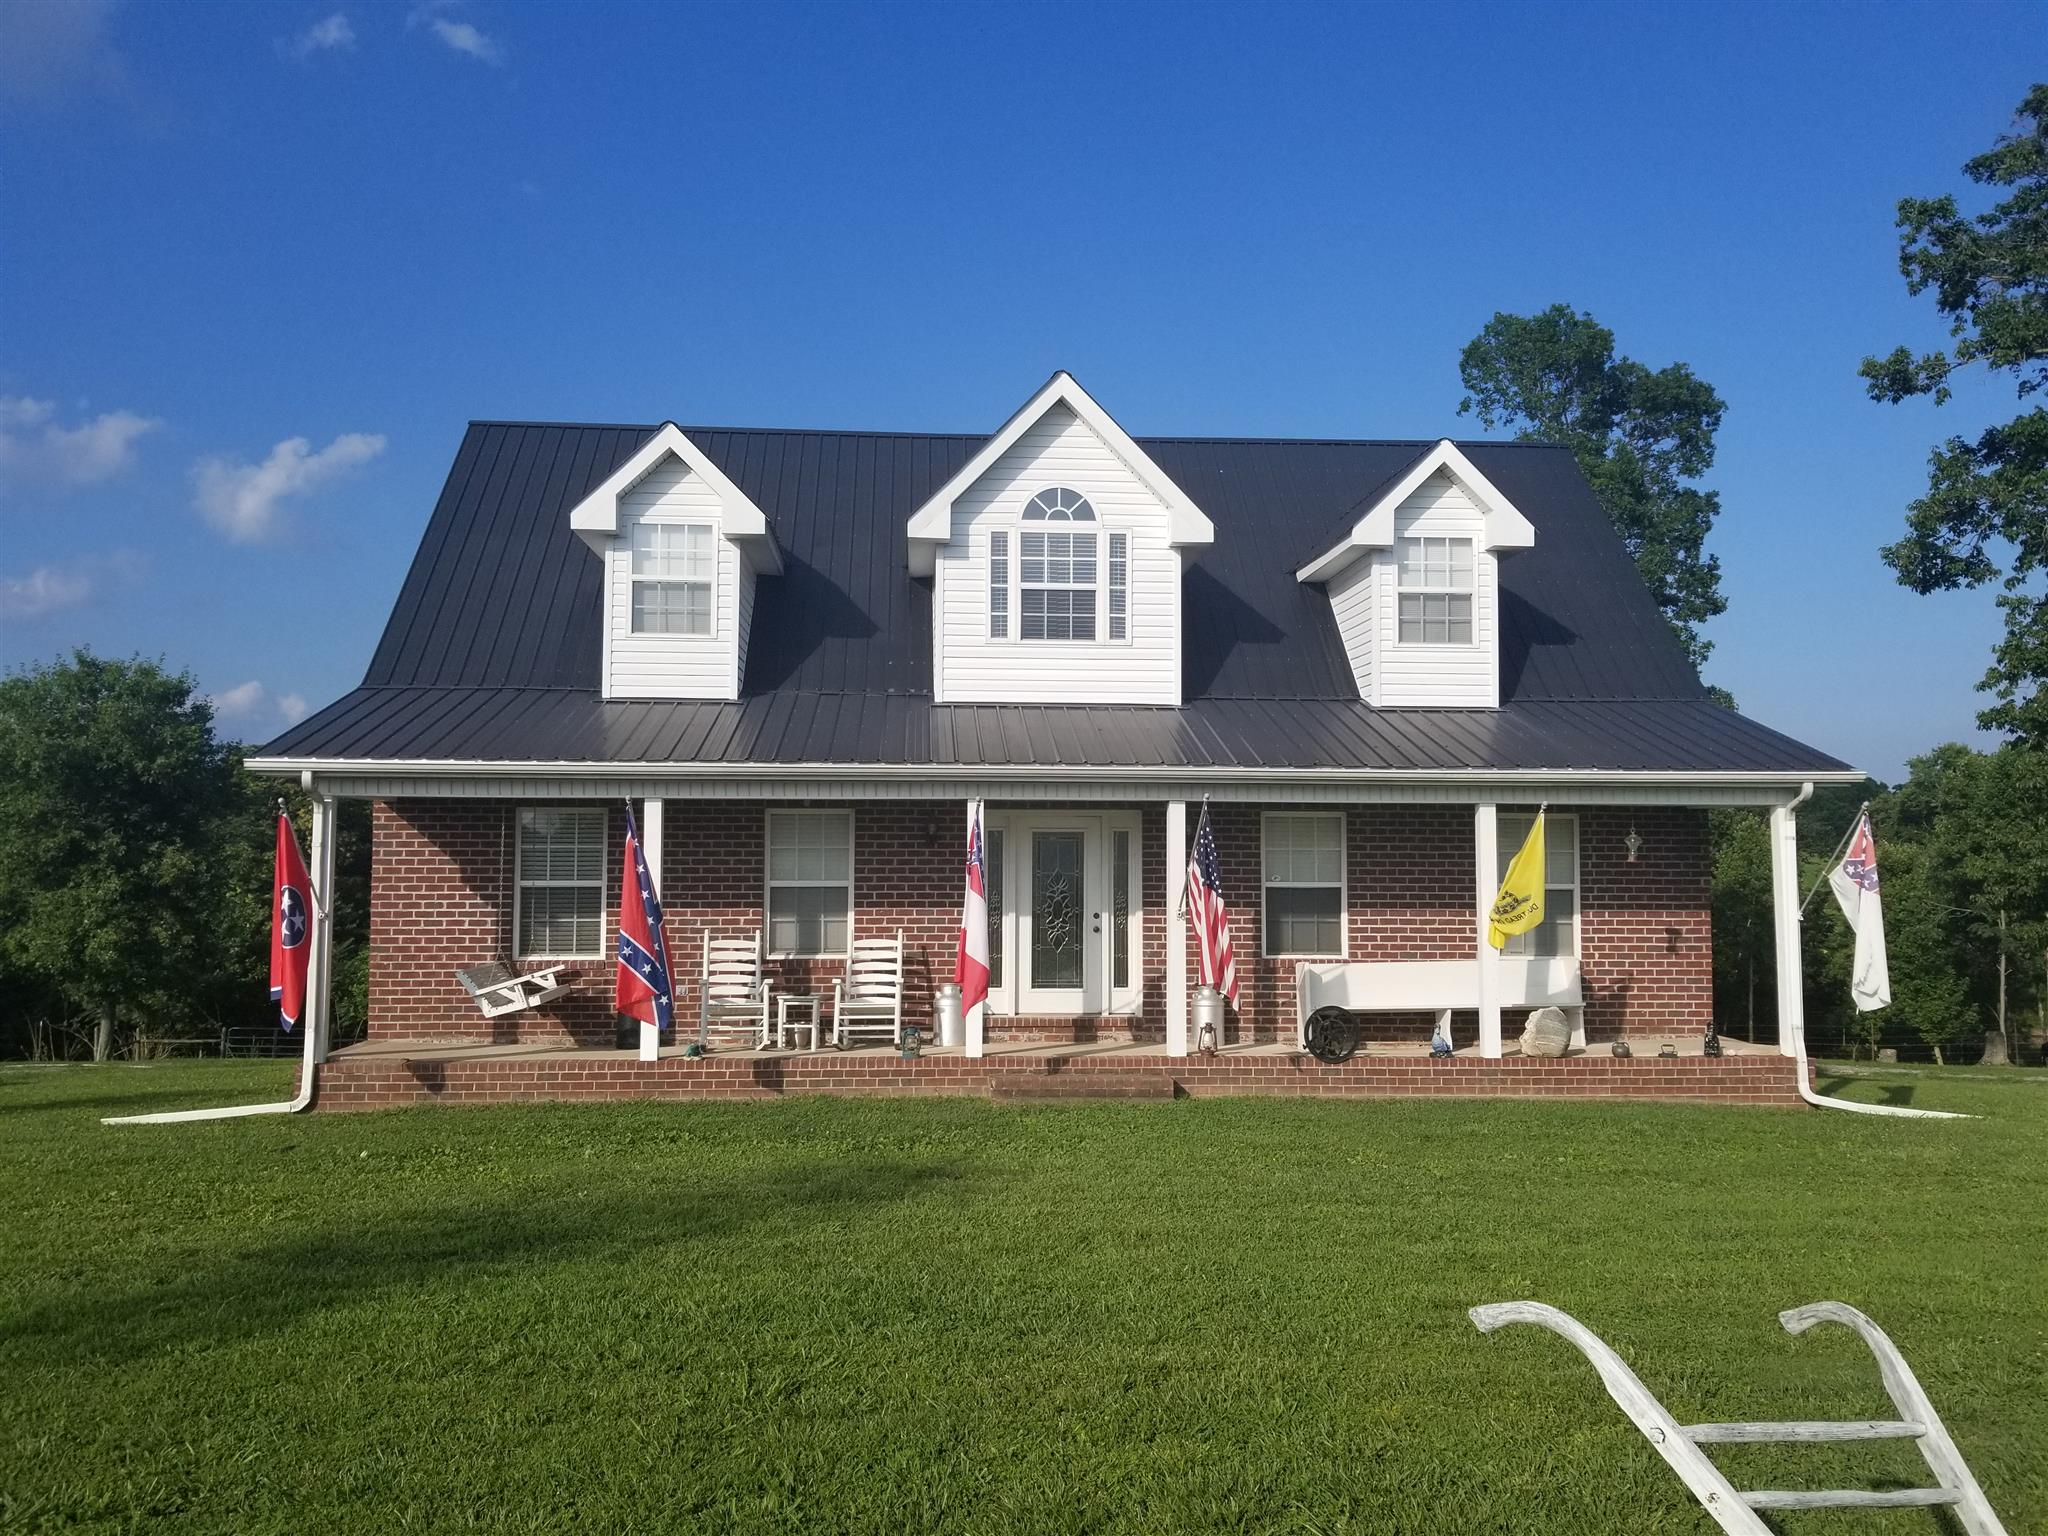 372 W L White Lane, Red Boiling Springs, TN 37150 - Red Boiling Springs, TN real estate listing